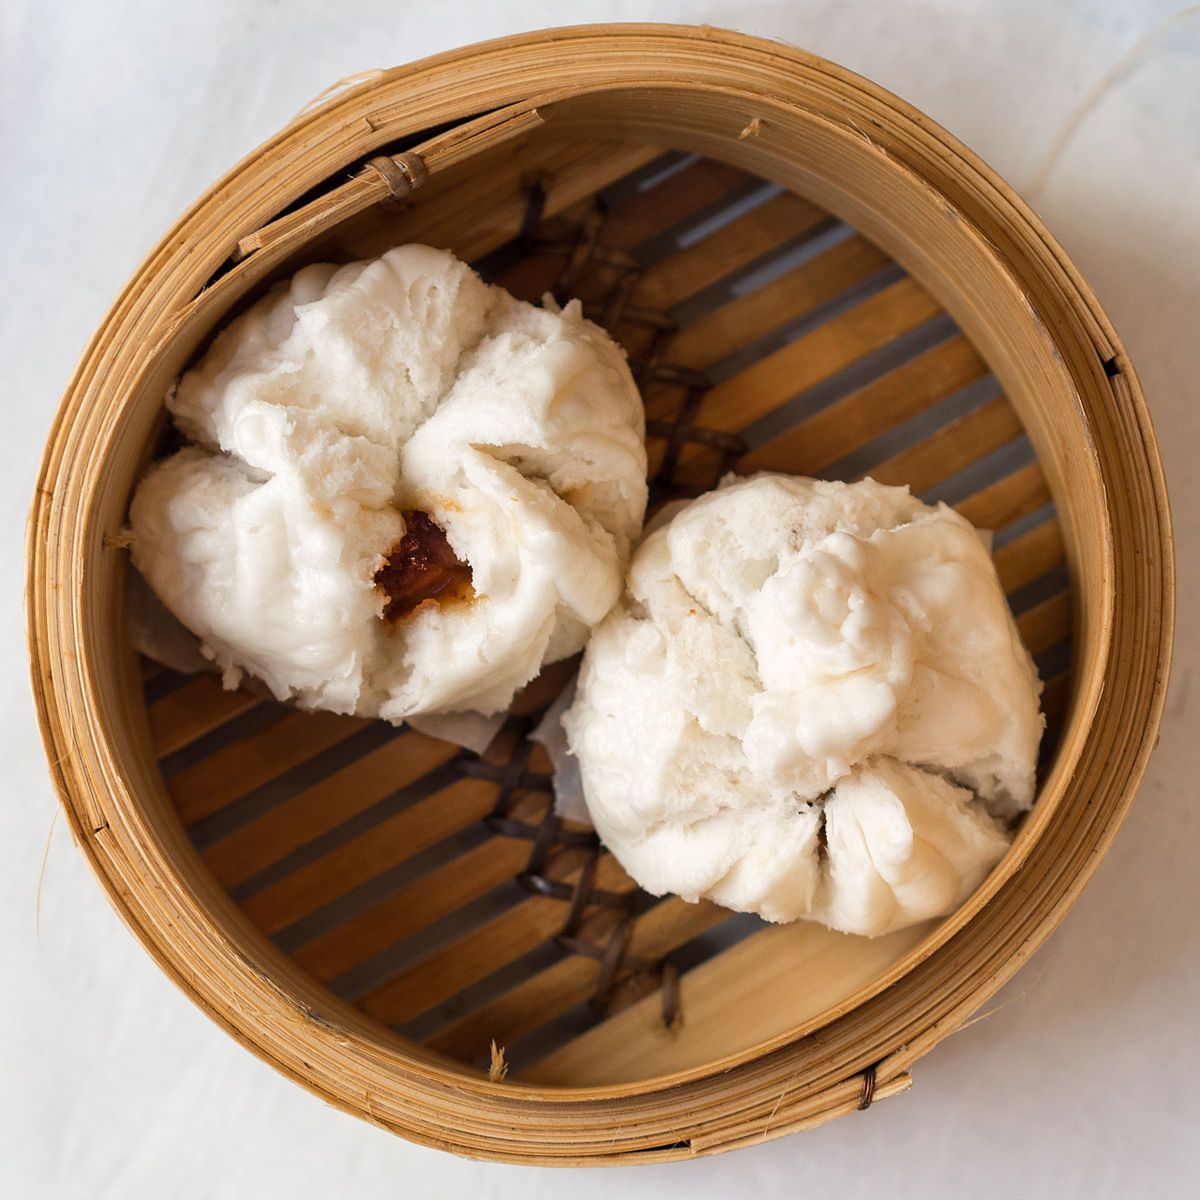 cha siu bao wikipedia - Baos De Color